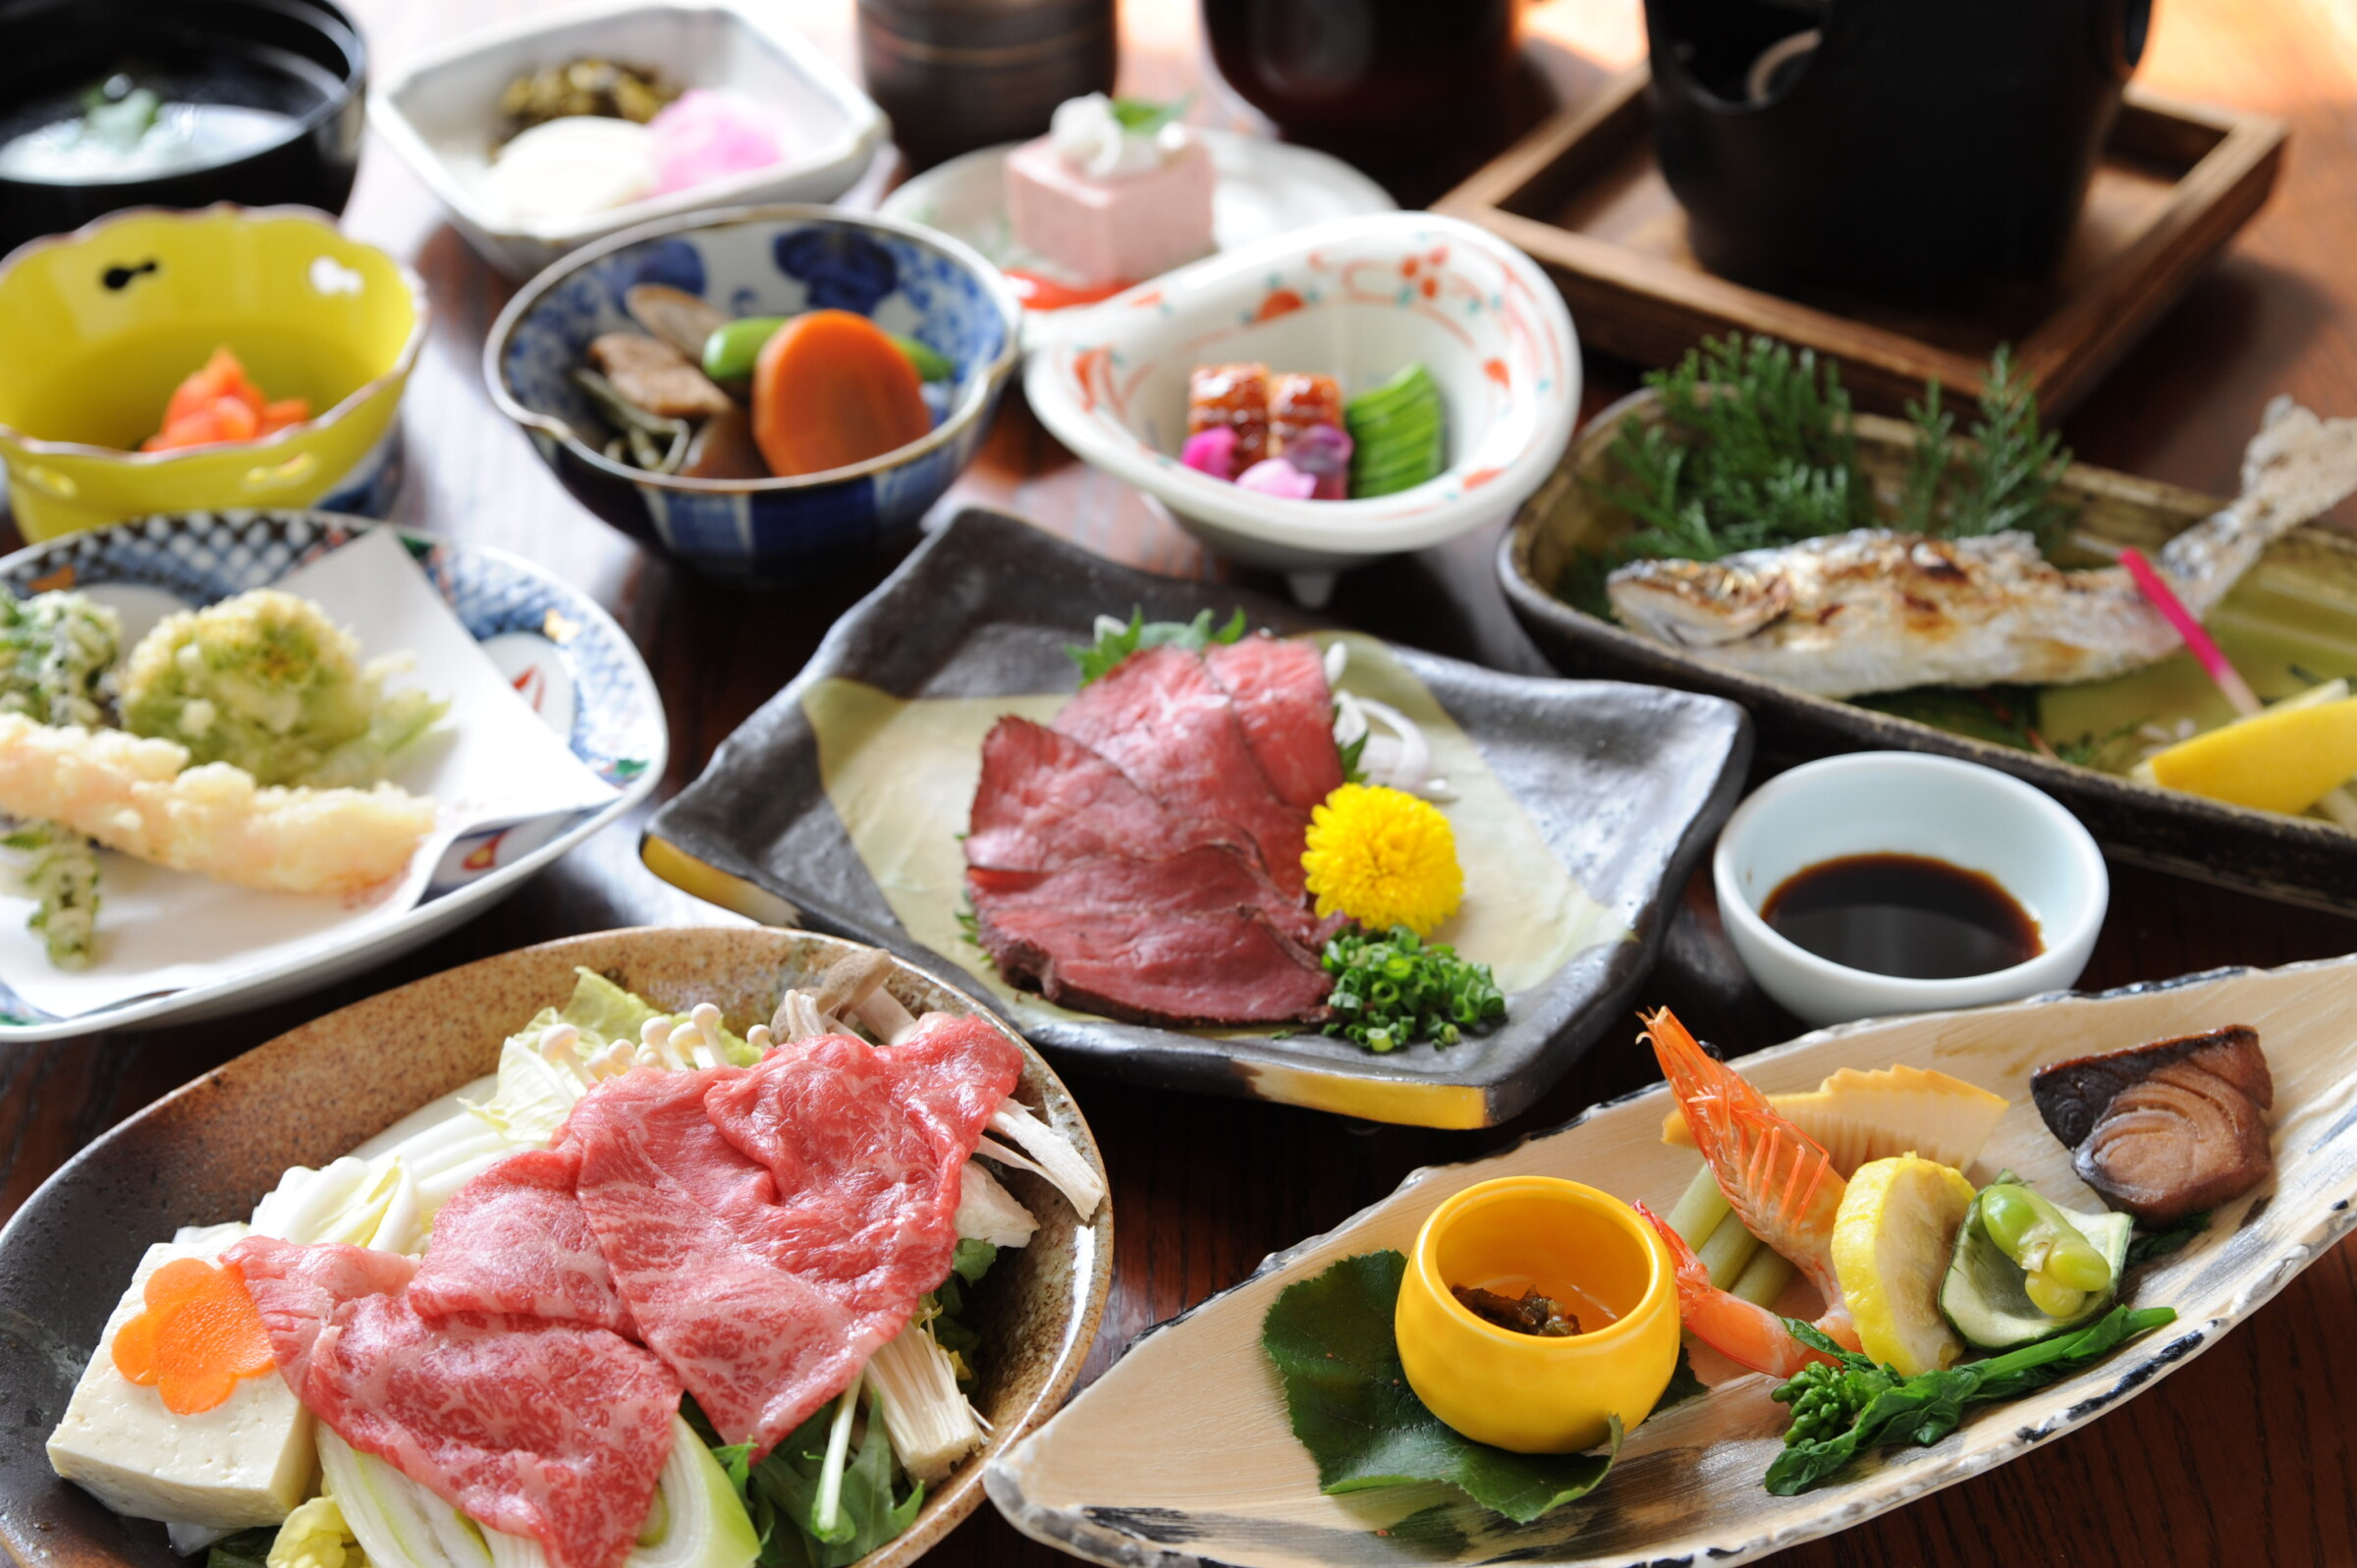 A kaiseki meal from the Japanese countryside